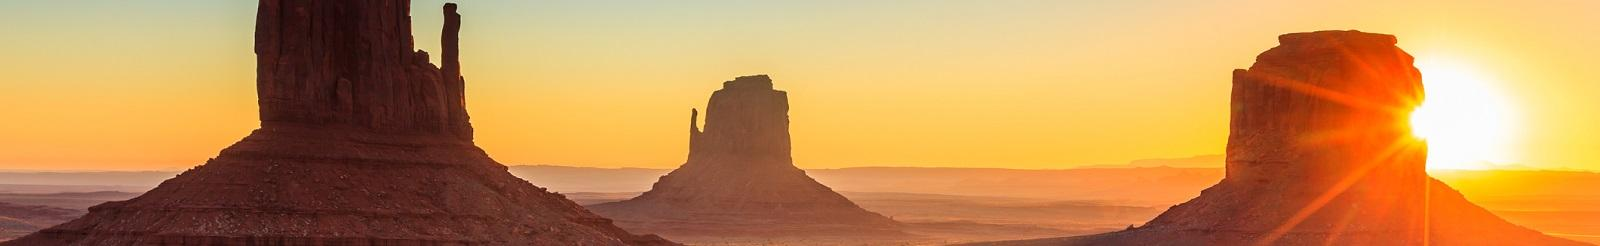 Monument valley sunrise letterbox